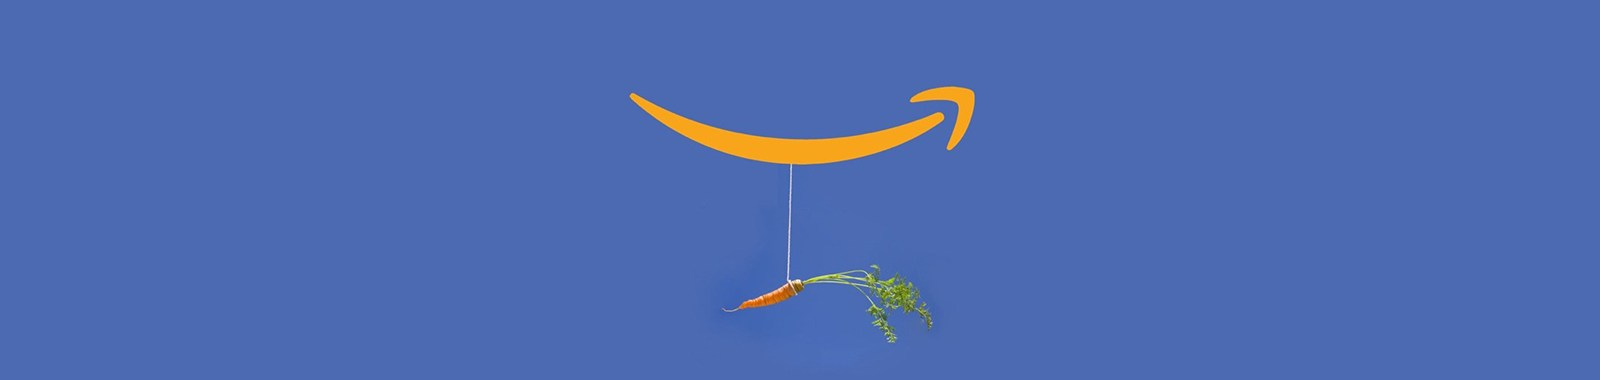 amazon-carrot-eye